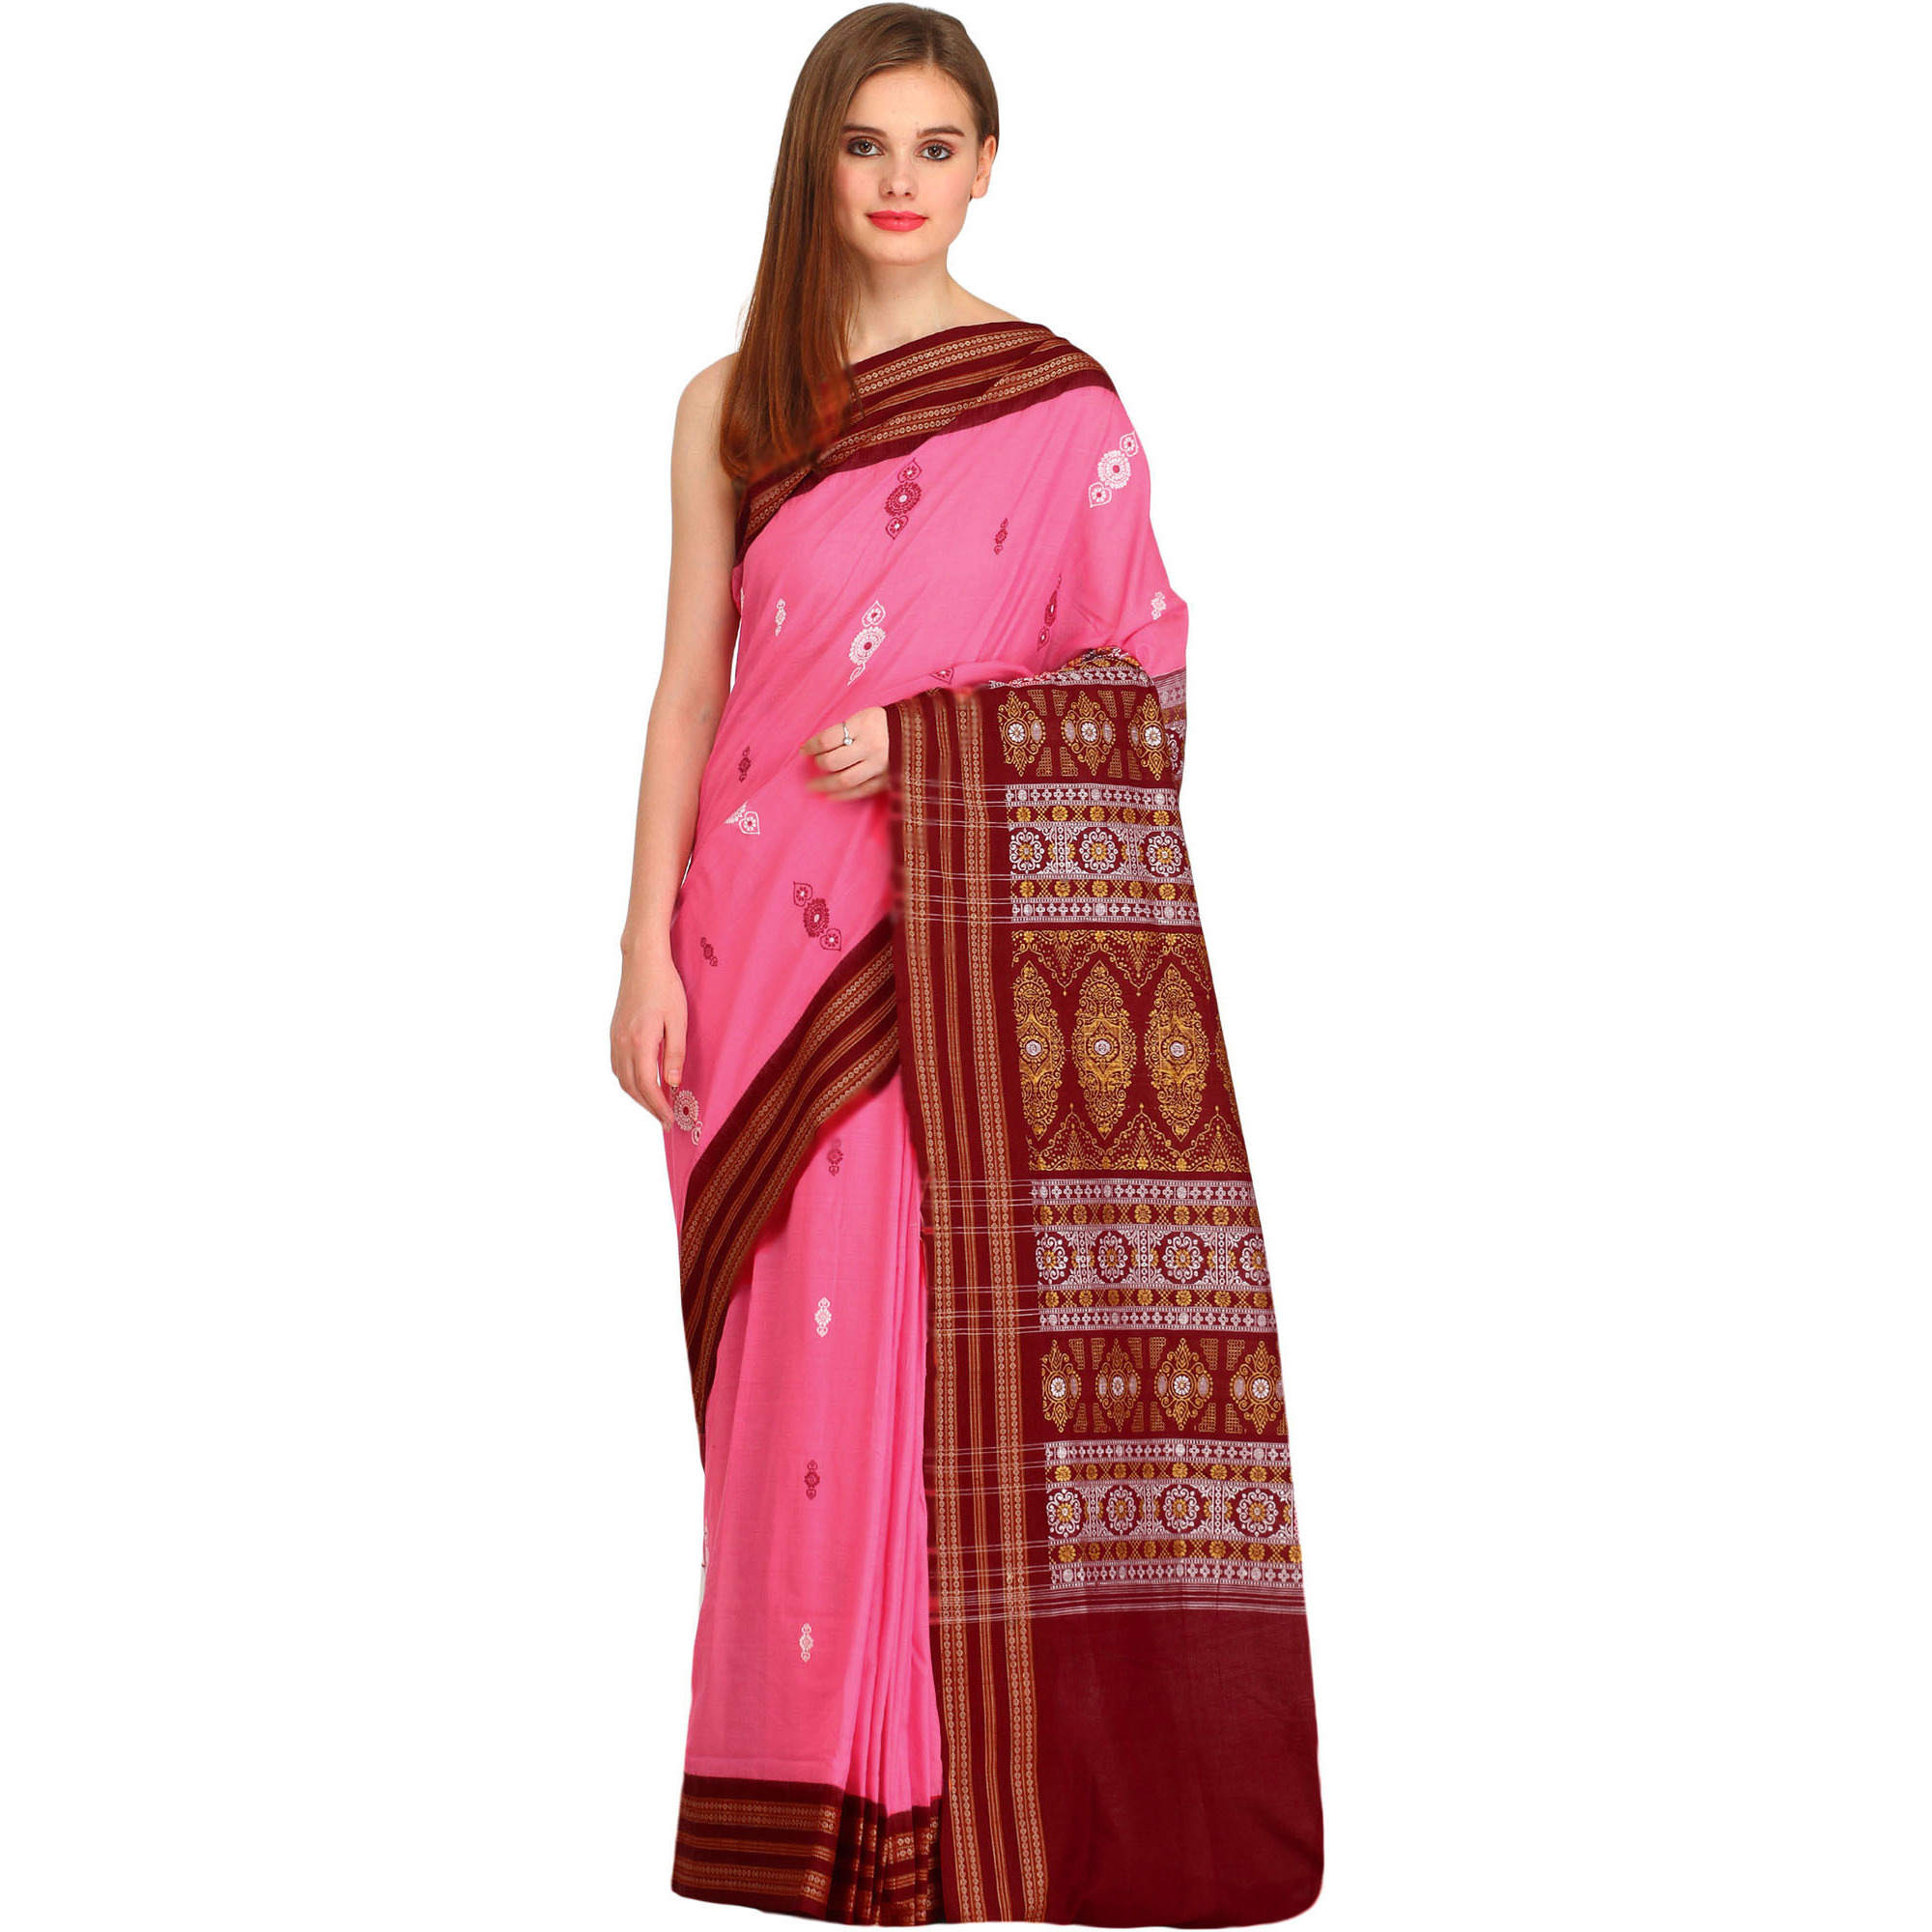 Pink and Maroon Bomkai Sari from Orissa with Rudraksha Border and Floral Weave on Pallu